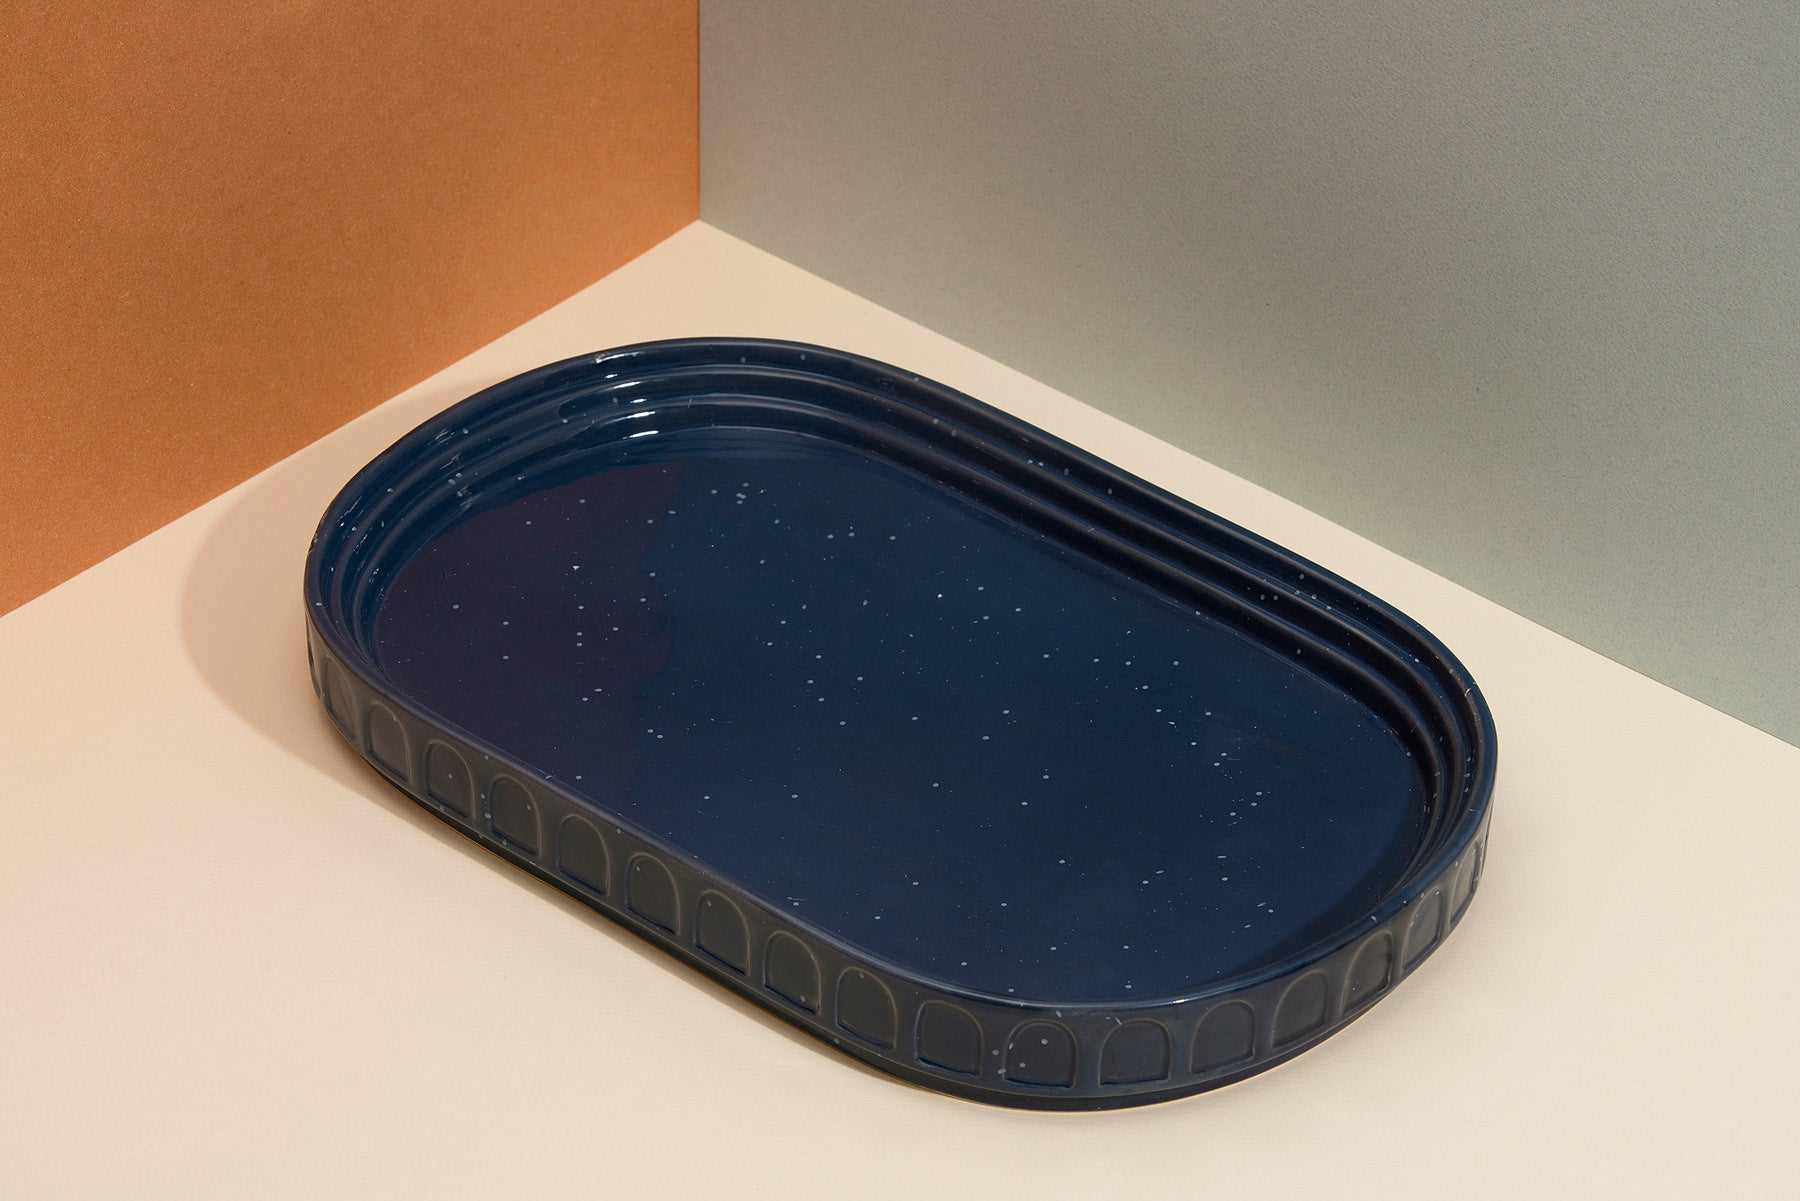 Blue Speckled Ceramic Serving Platter